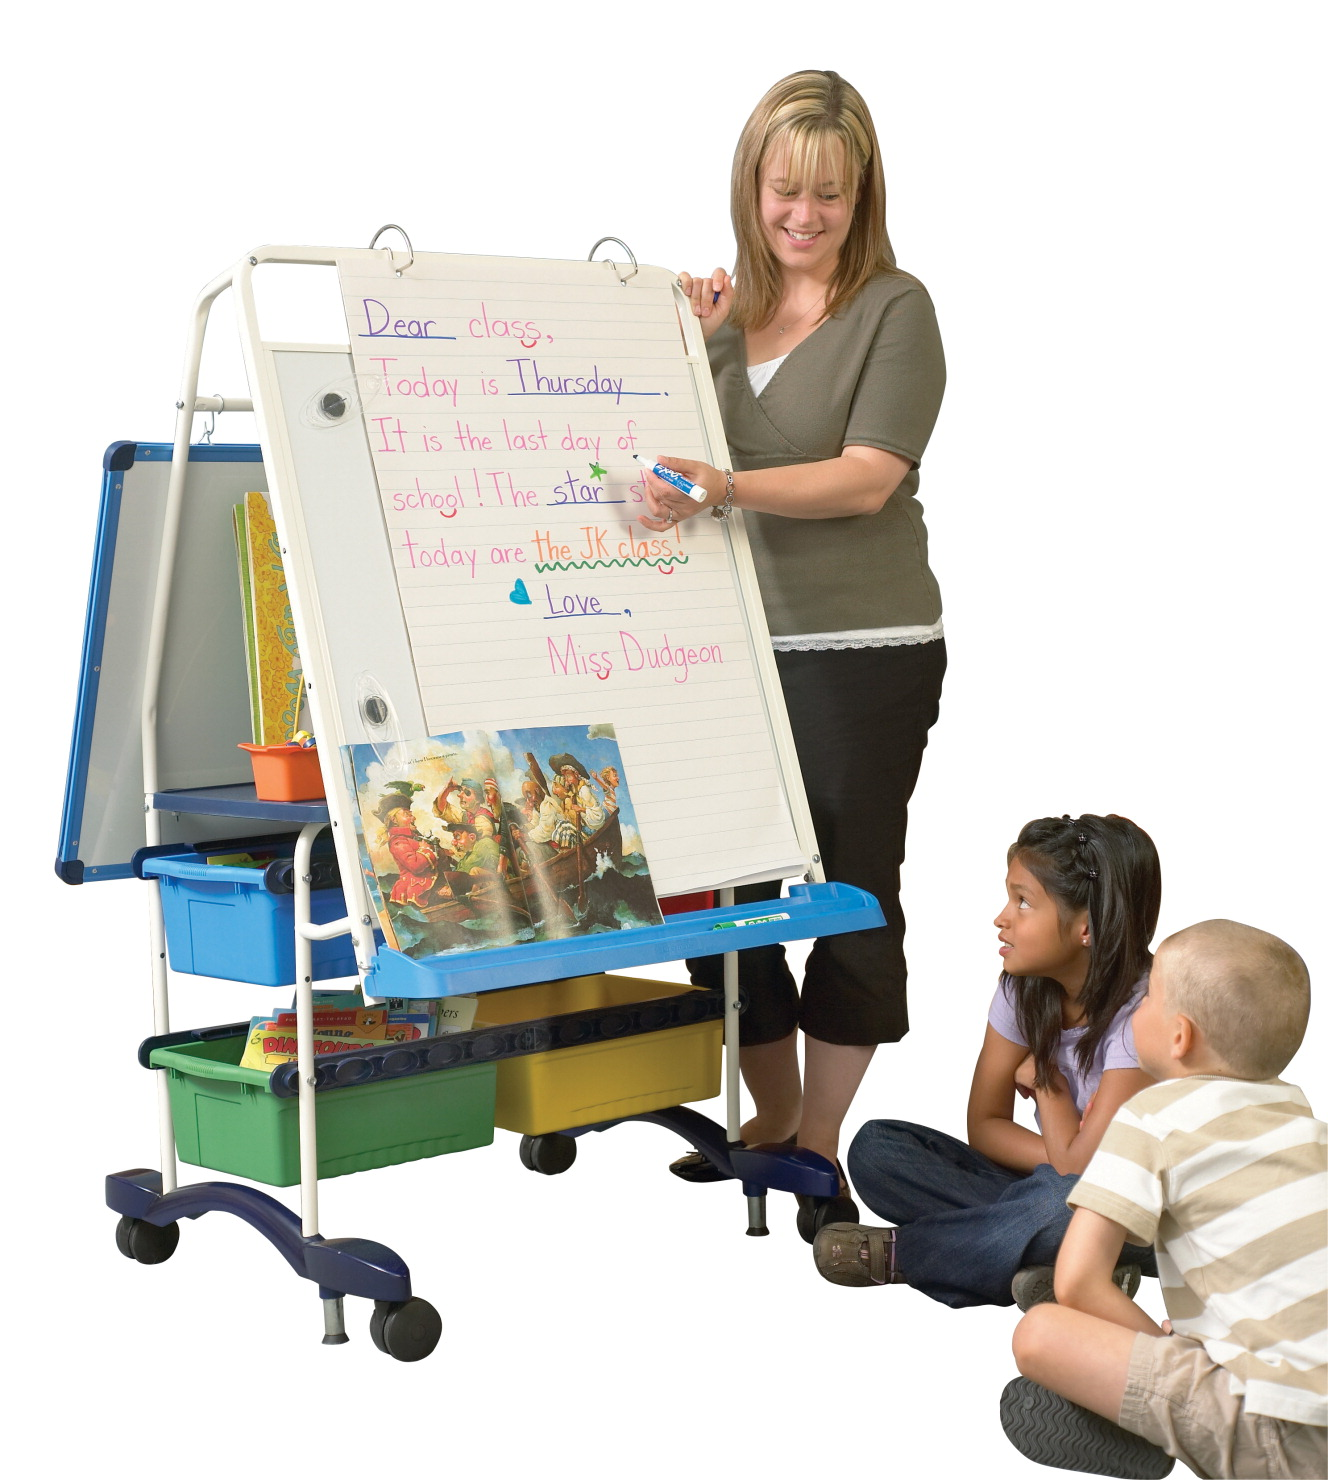 Copernicus Royal Standard Reading Writing Center, 31-1/2 x 32 x 56-1/2 Inches